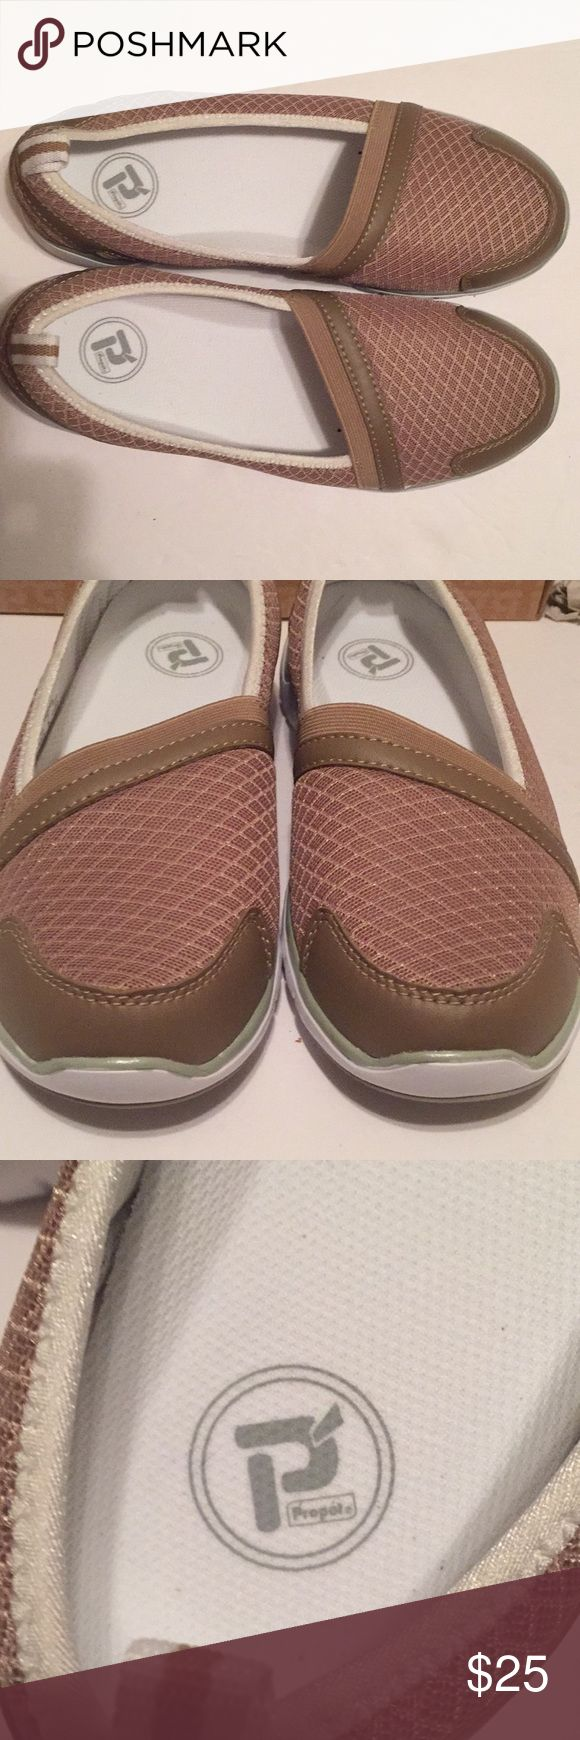 Propet Travellite Womens Slipon Shoe Taupe Size 7W Propet Travellite Womens Slip-on Shoe Taupe Size 7W Taupe with white soles Brand new in original box  Engineered for comfort. Designed for life. Propet Shoes